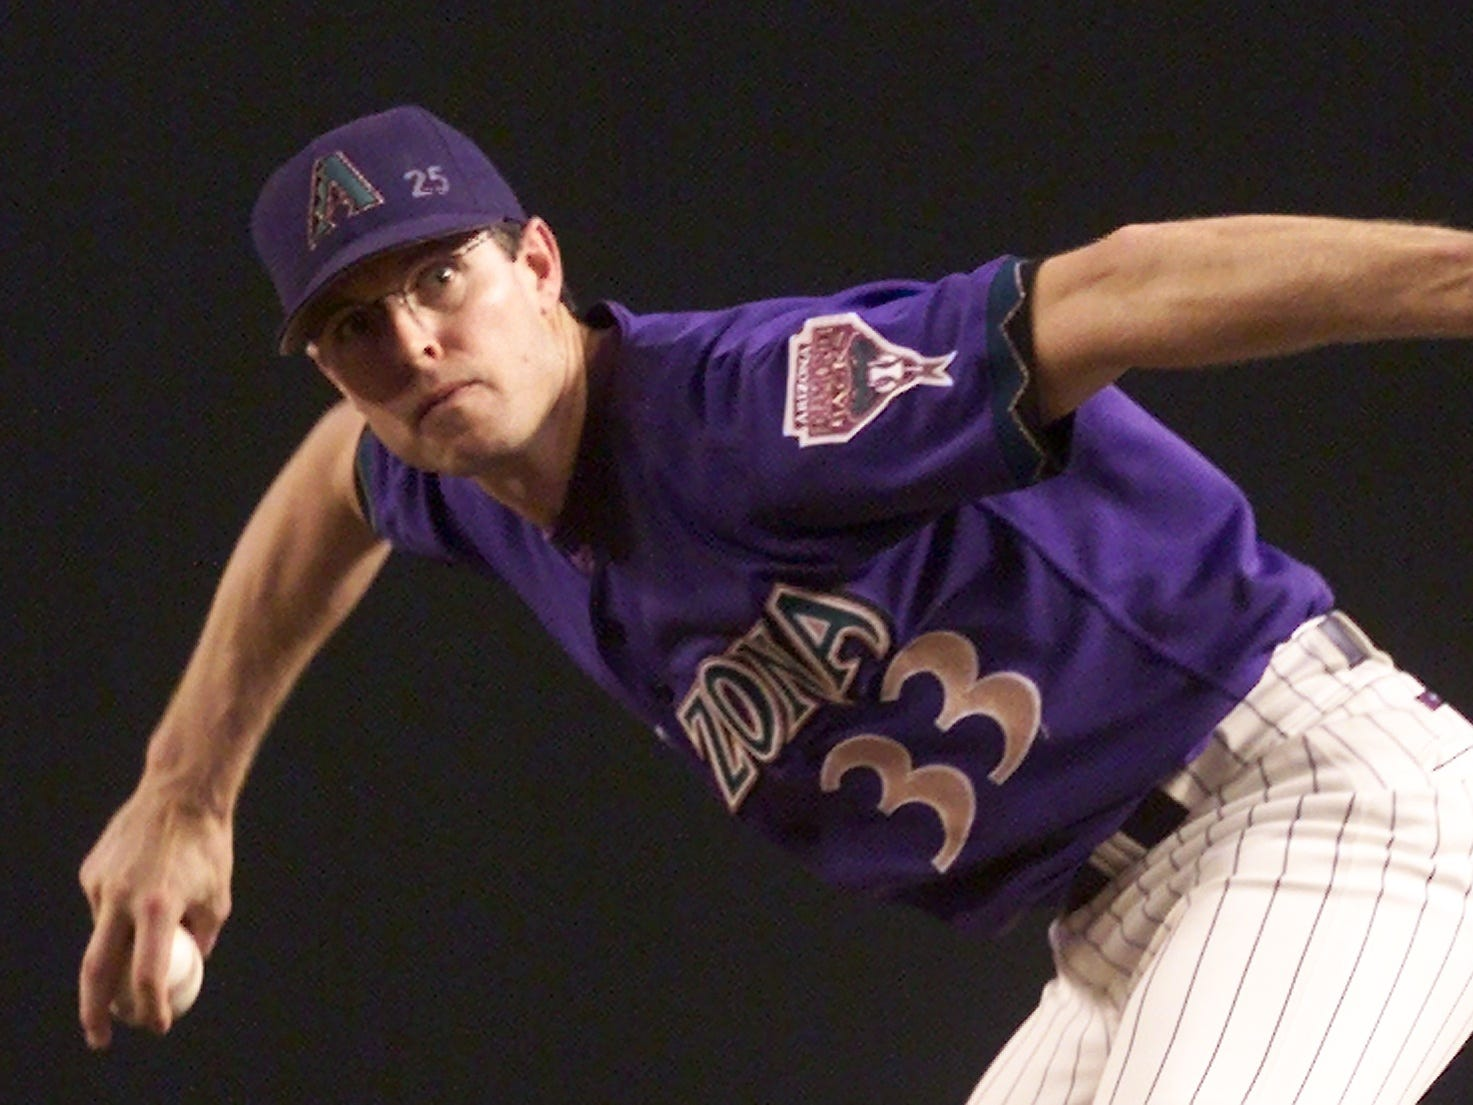 Jay Bell spent five years with the Diamondbacks as a player and helped Arizona to its only World Series title in 2001.